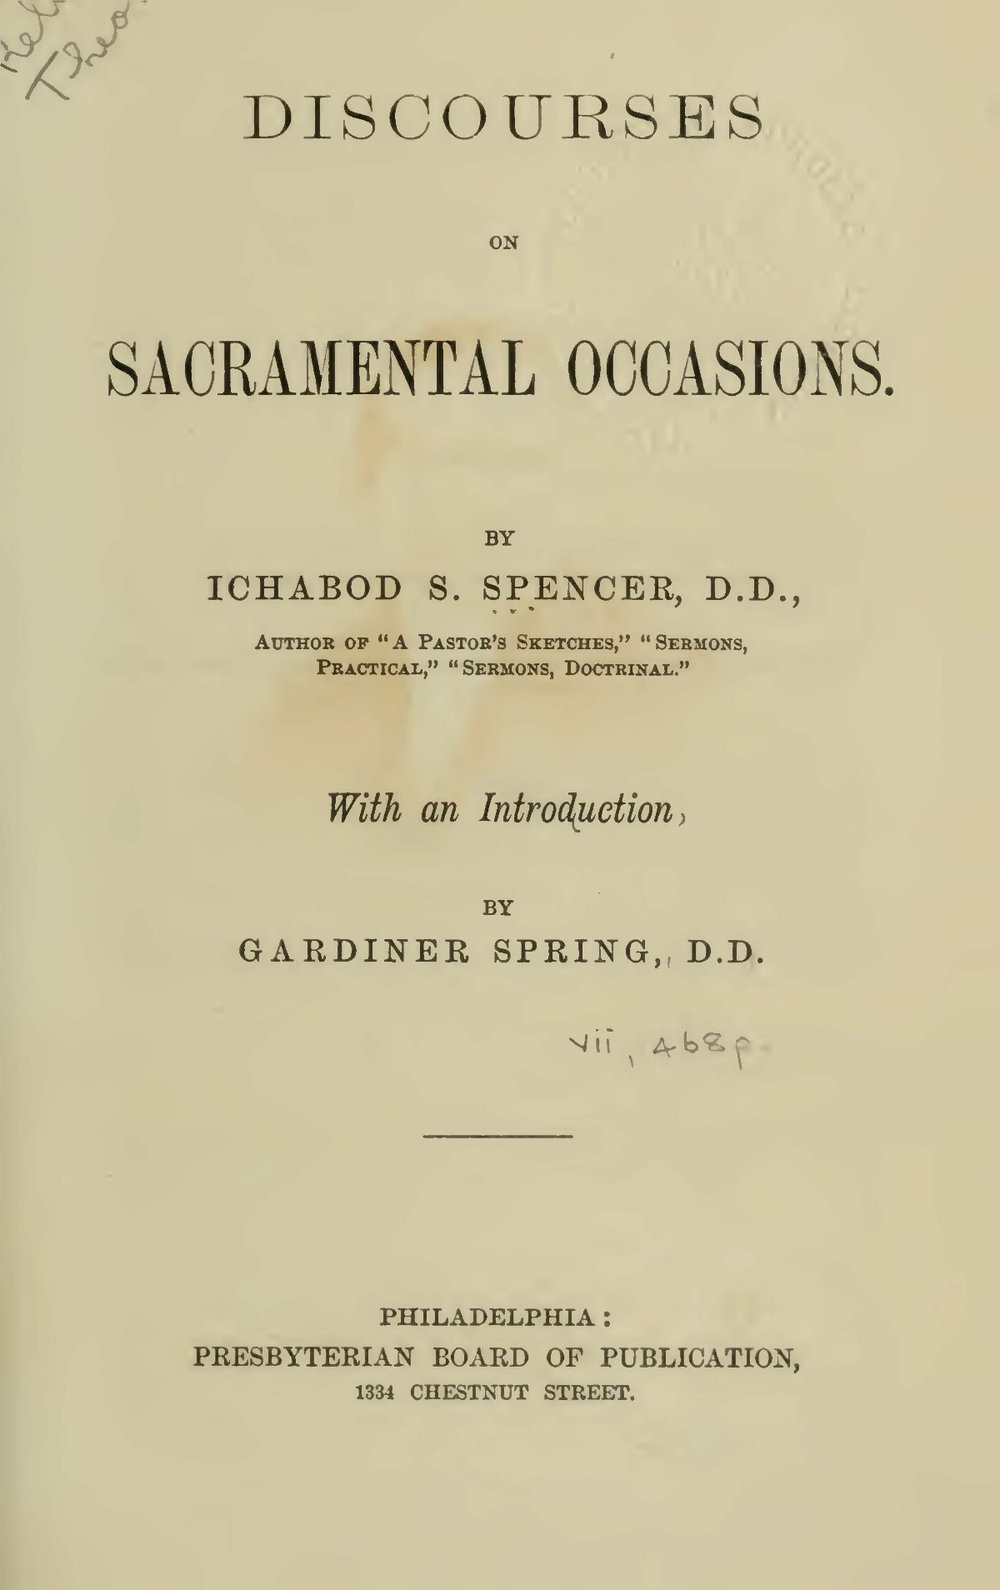 Spencer, Ichabod Smith, Discourses on Sacramental Occasions Title Page.jpg